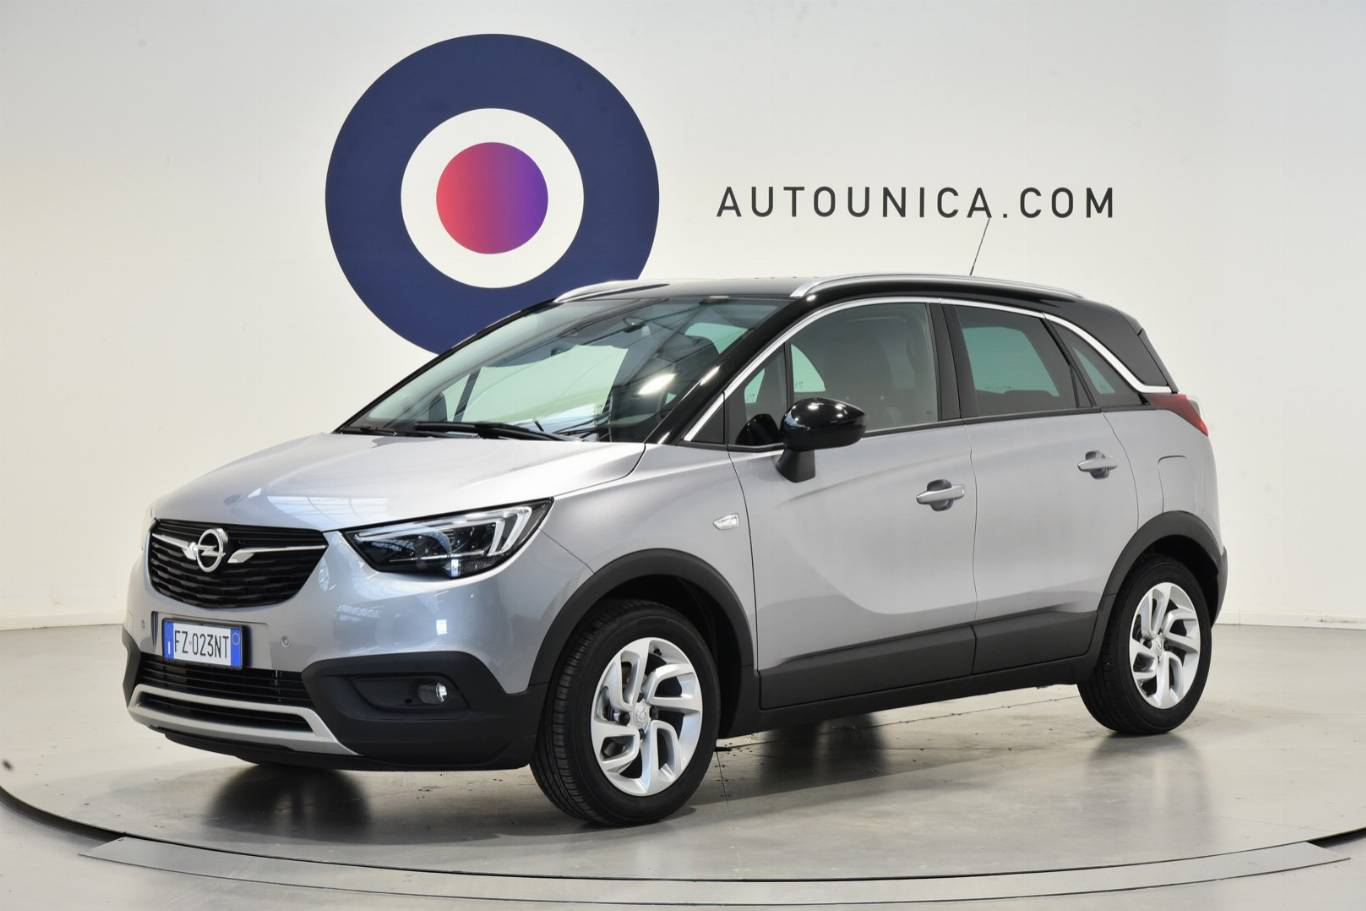 OPEL - Crossland X 1.2 INNOVATION IDEALE PER NEOPATENTATI KM 0